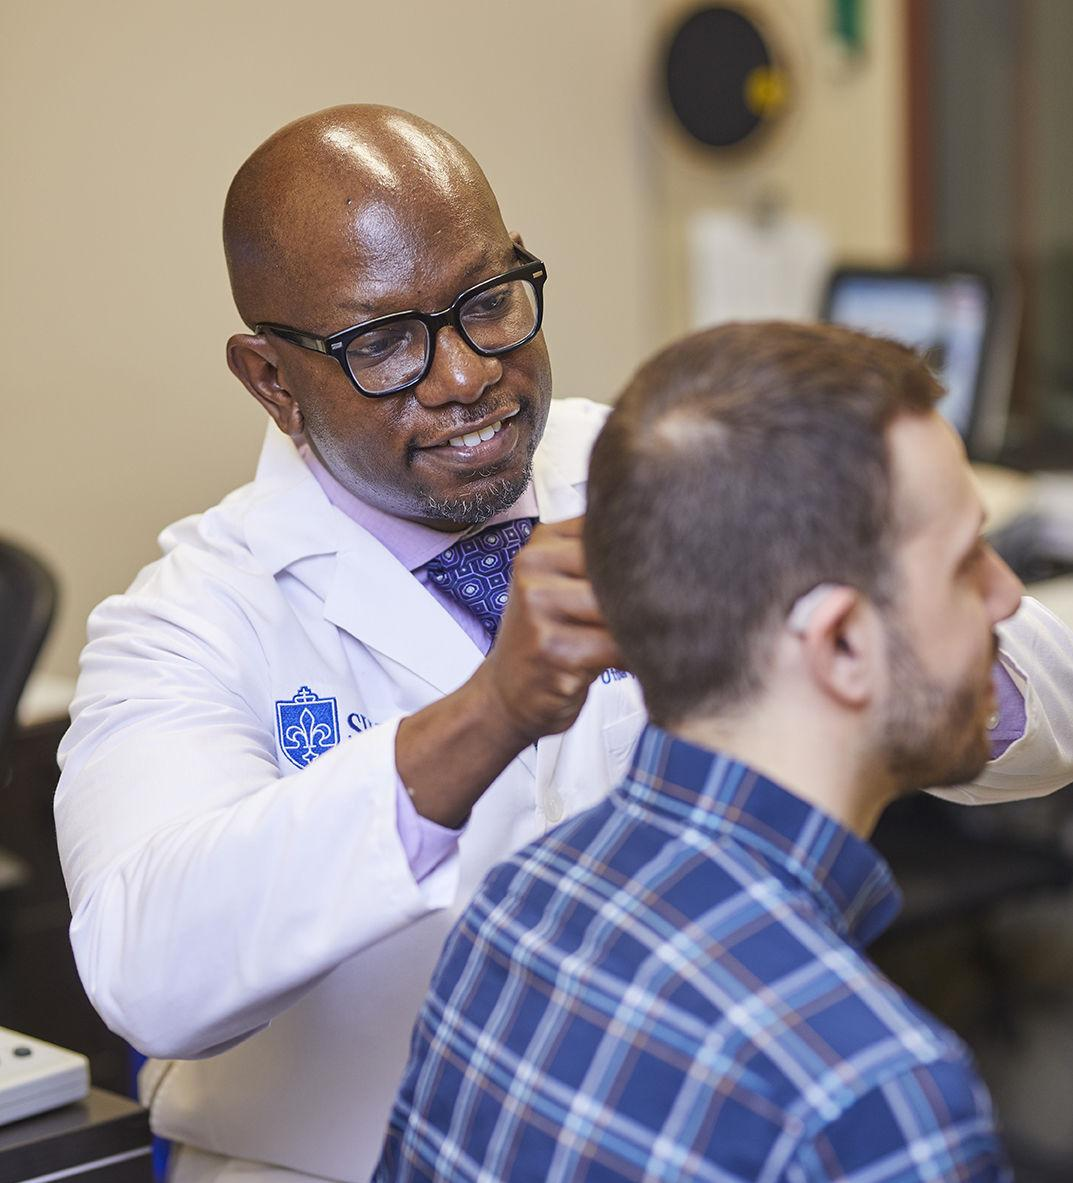 SLUCare audiologists provide expert care to ease living with hearing loss